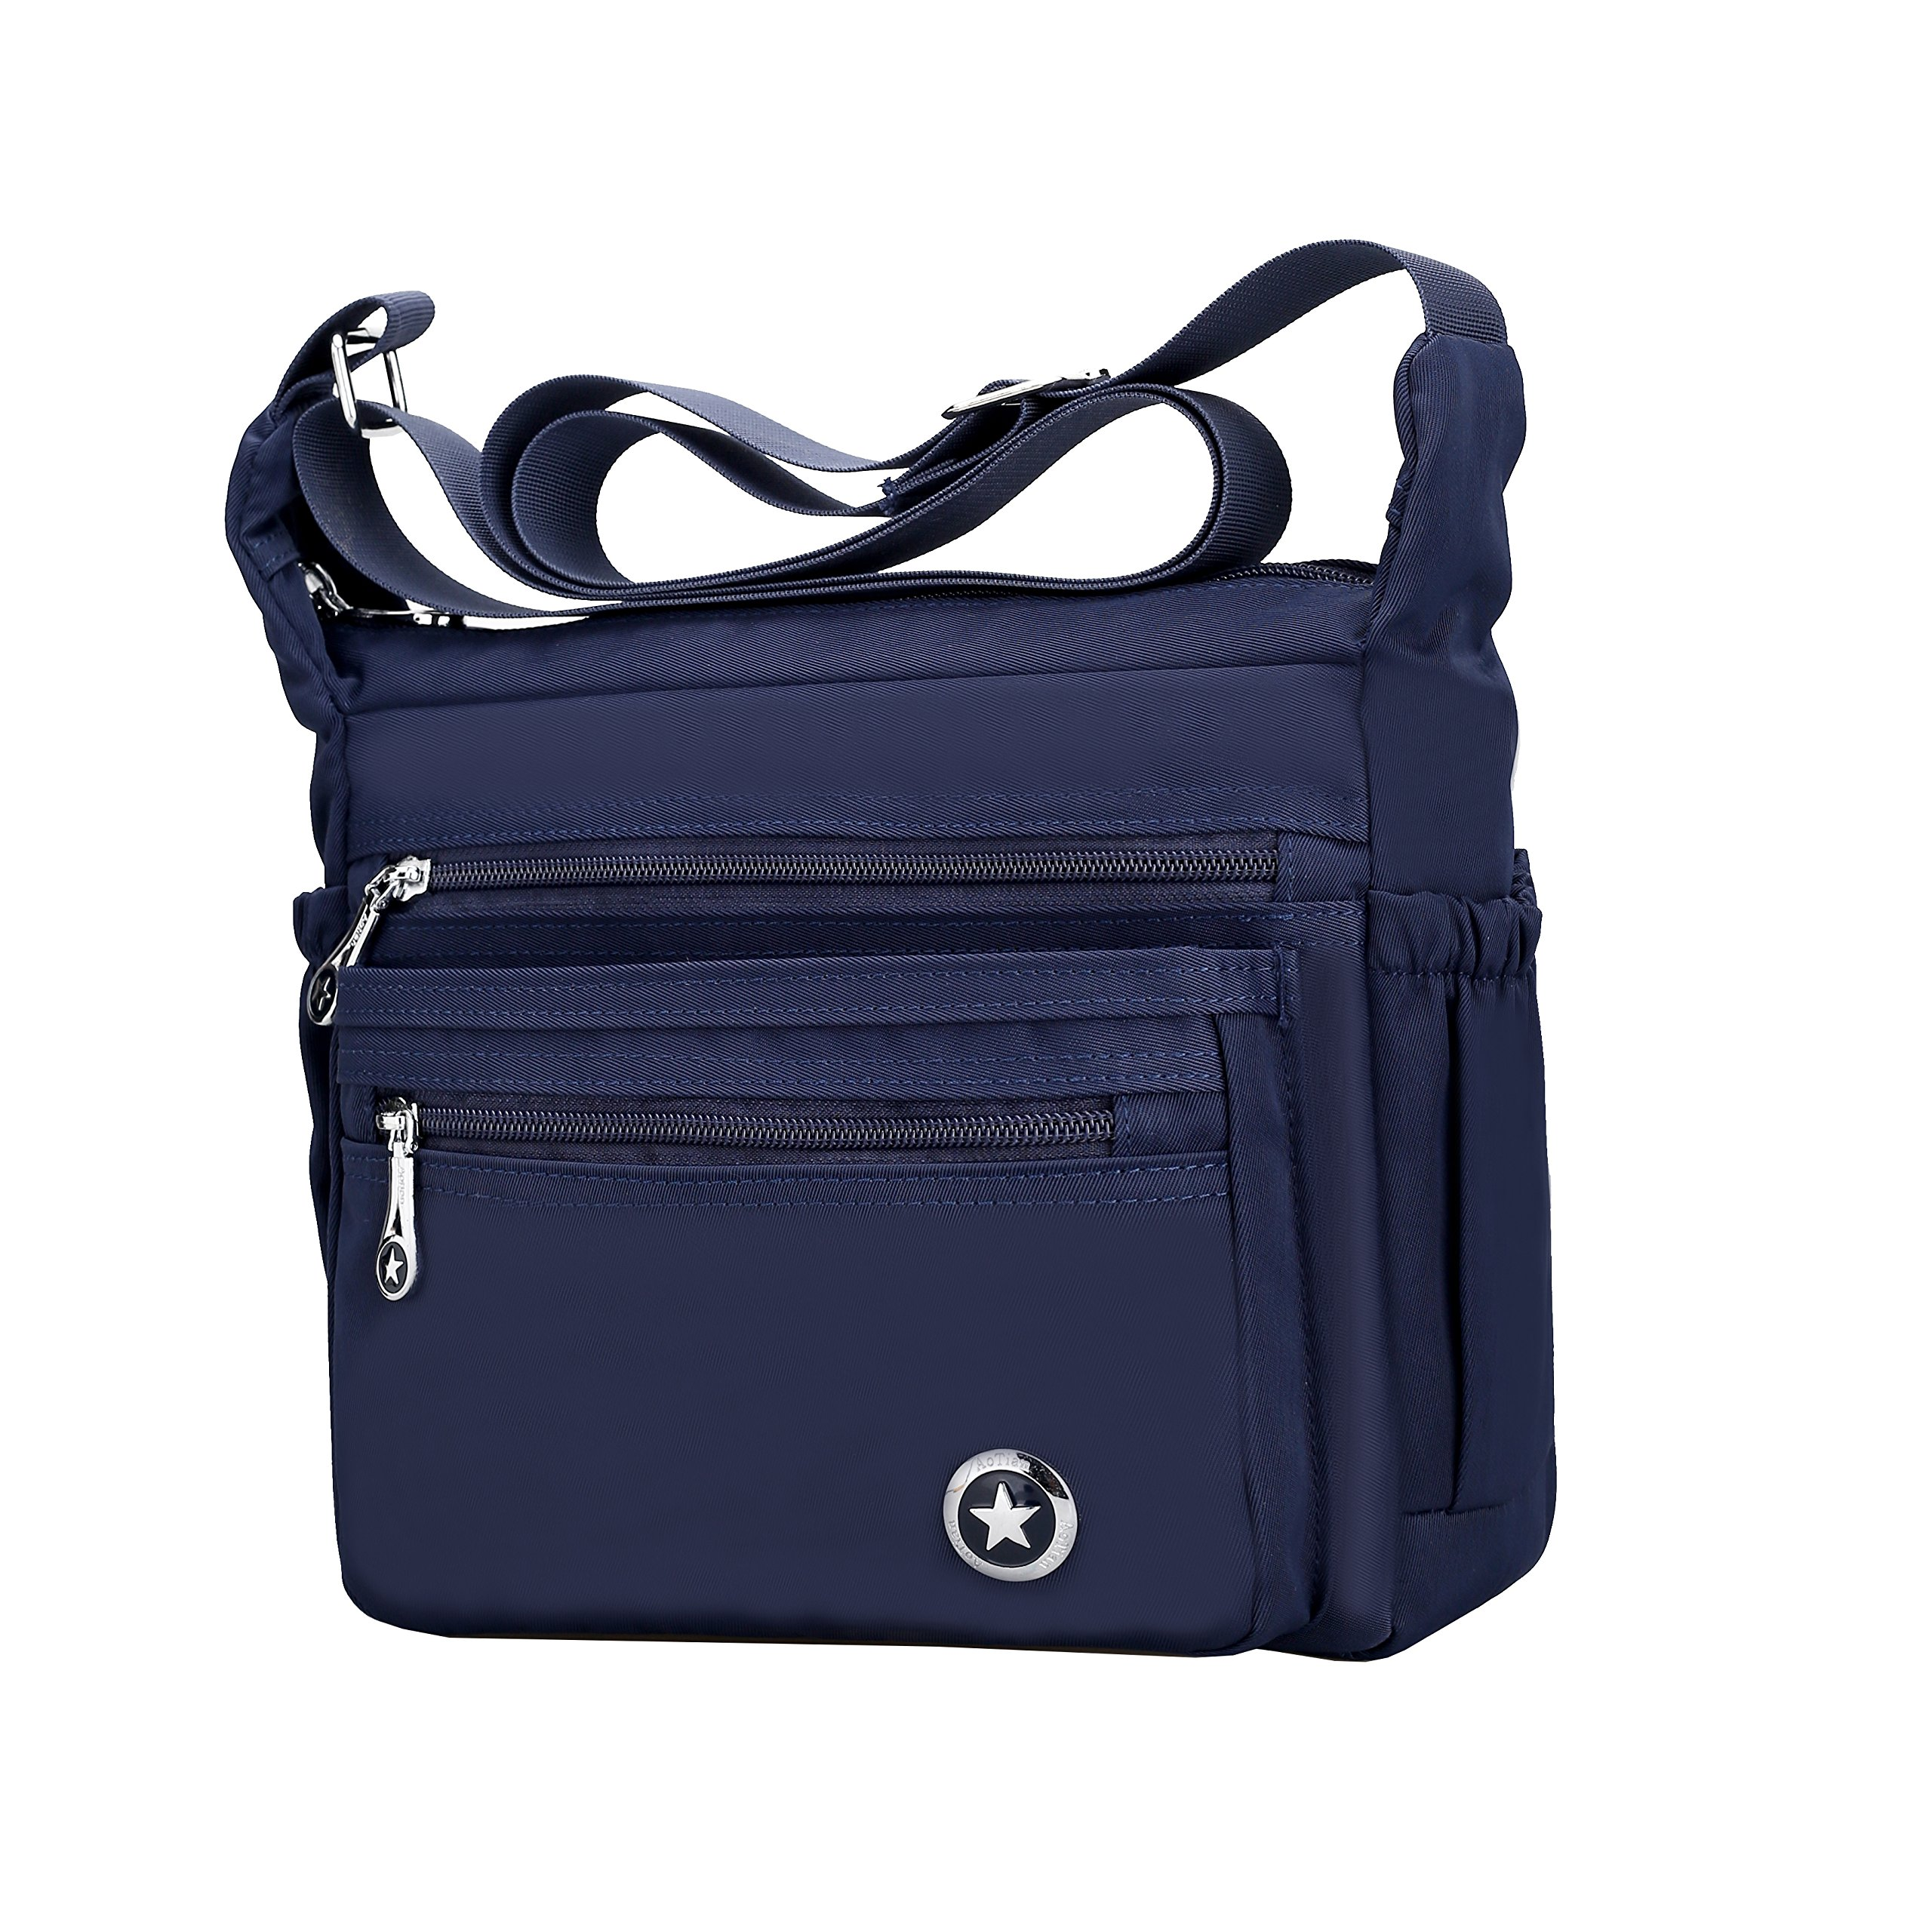 Fabuxry Shoulder Bag for Women Casual Messenger Bags Nylon Handbags Purses Cross Body Bags (Navy)